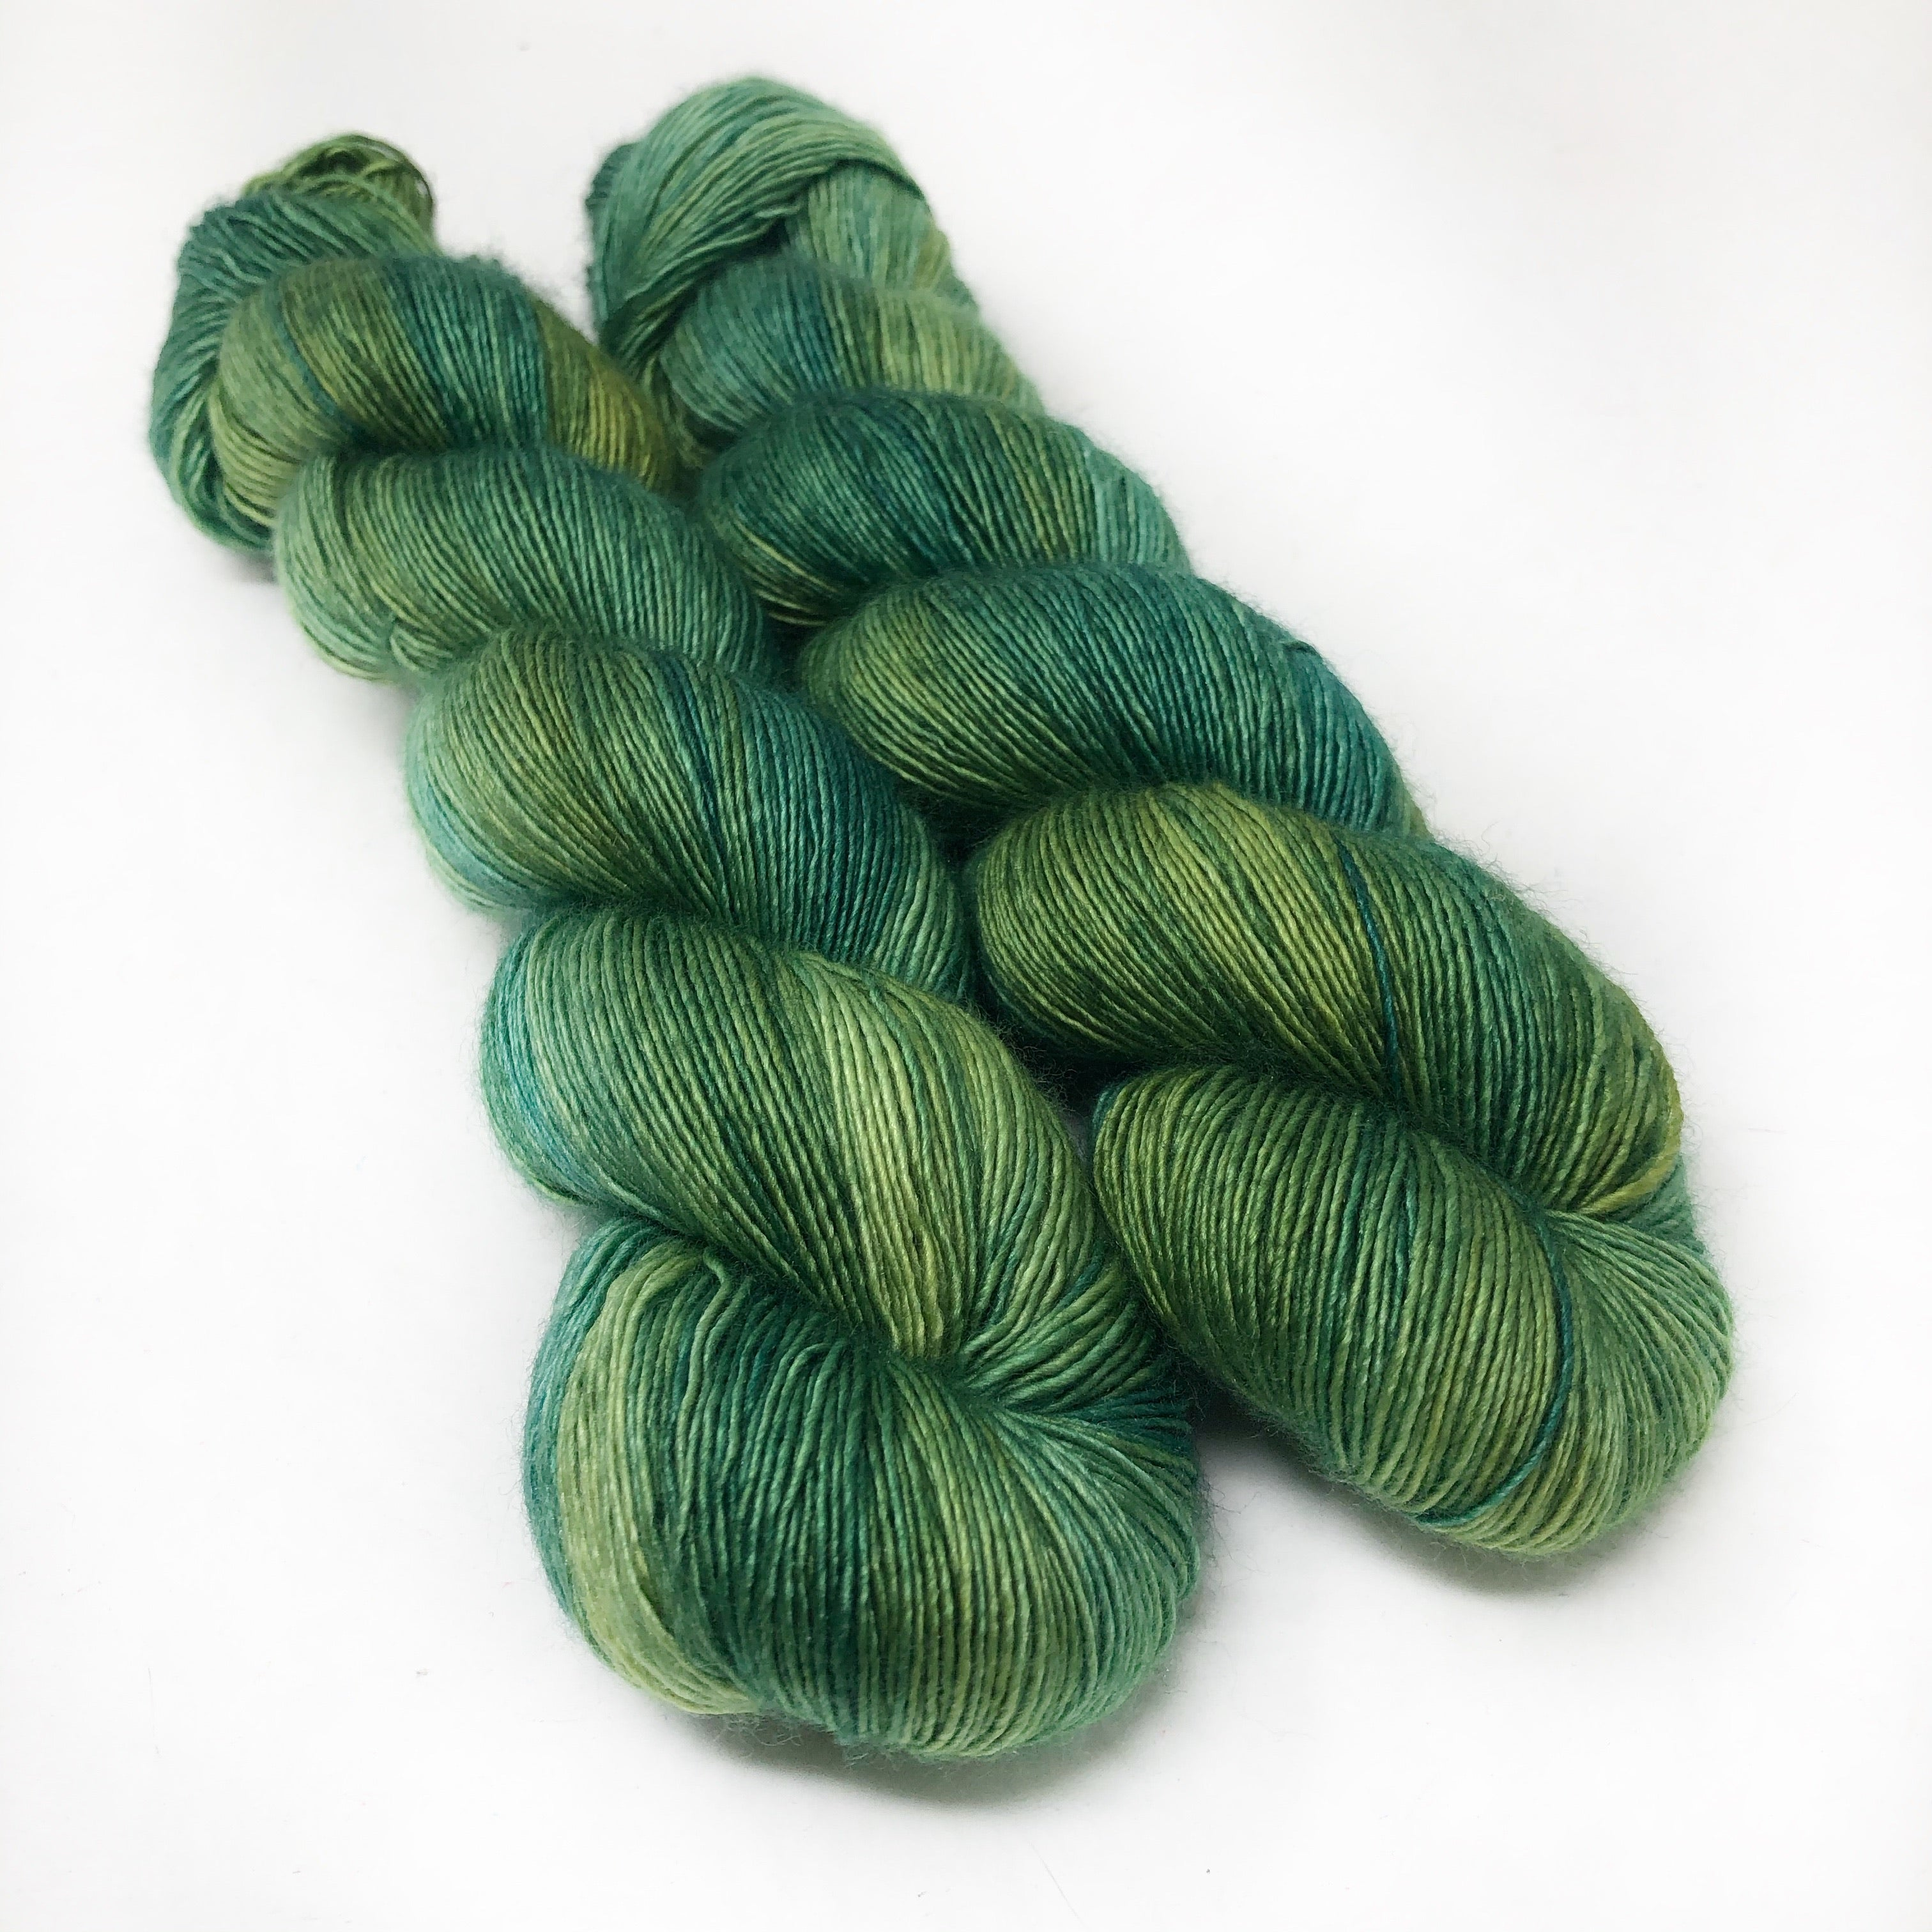 In the Ivy - 70/30 merino silk single ply